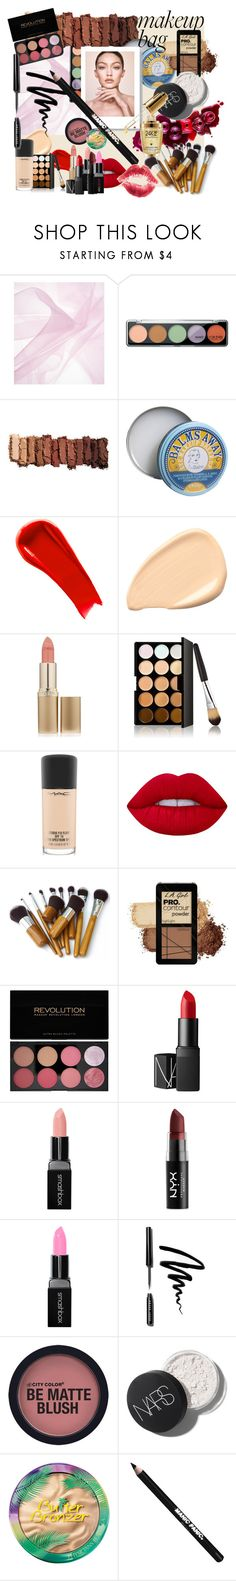 """""""my make up routine"""" by lovelofe on Polyvore featuring bellezza, MAKE UP FOR EVER, Urban Decay, TheBalm, NARS Cosmetics, L'Oréal Paris, MAC Cosmetics, Lime Crime, Smashbox e NYX"""